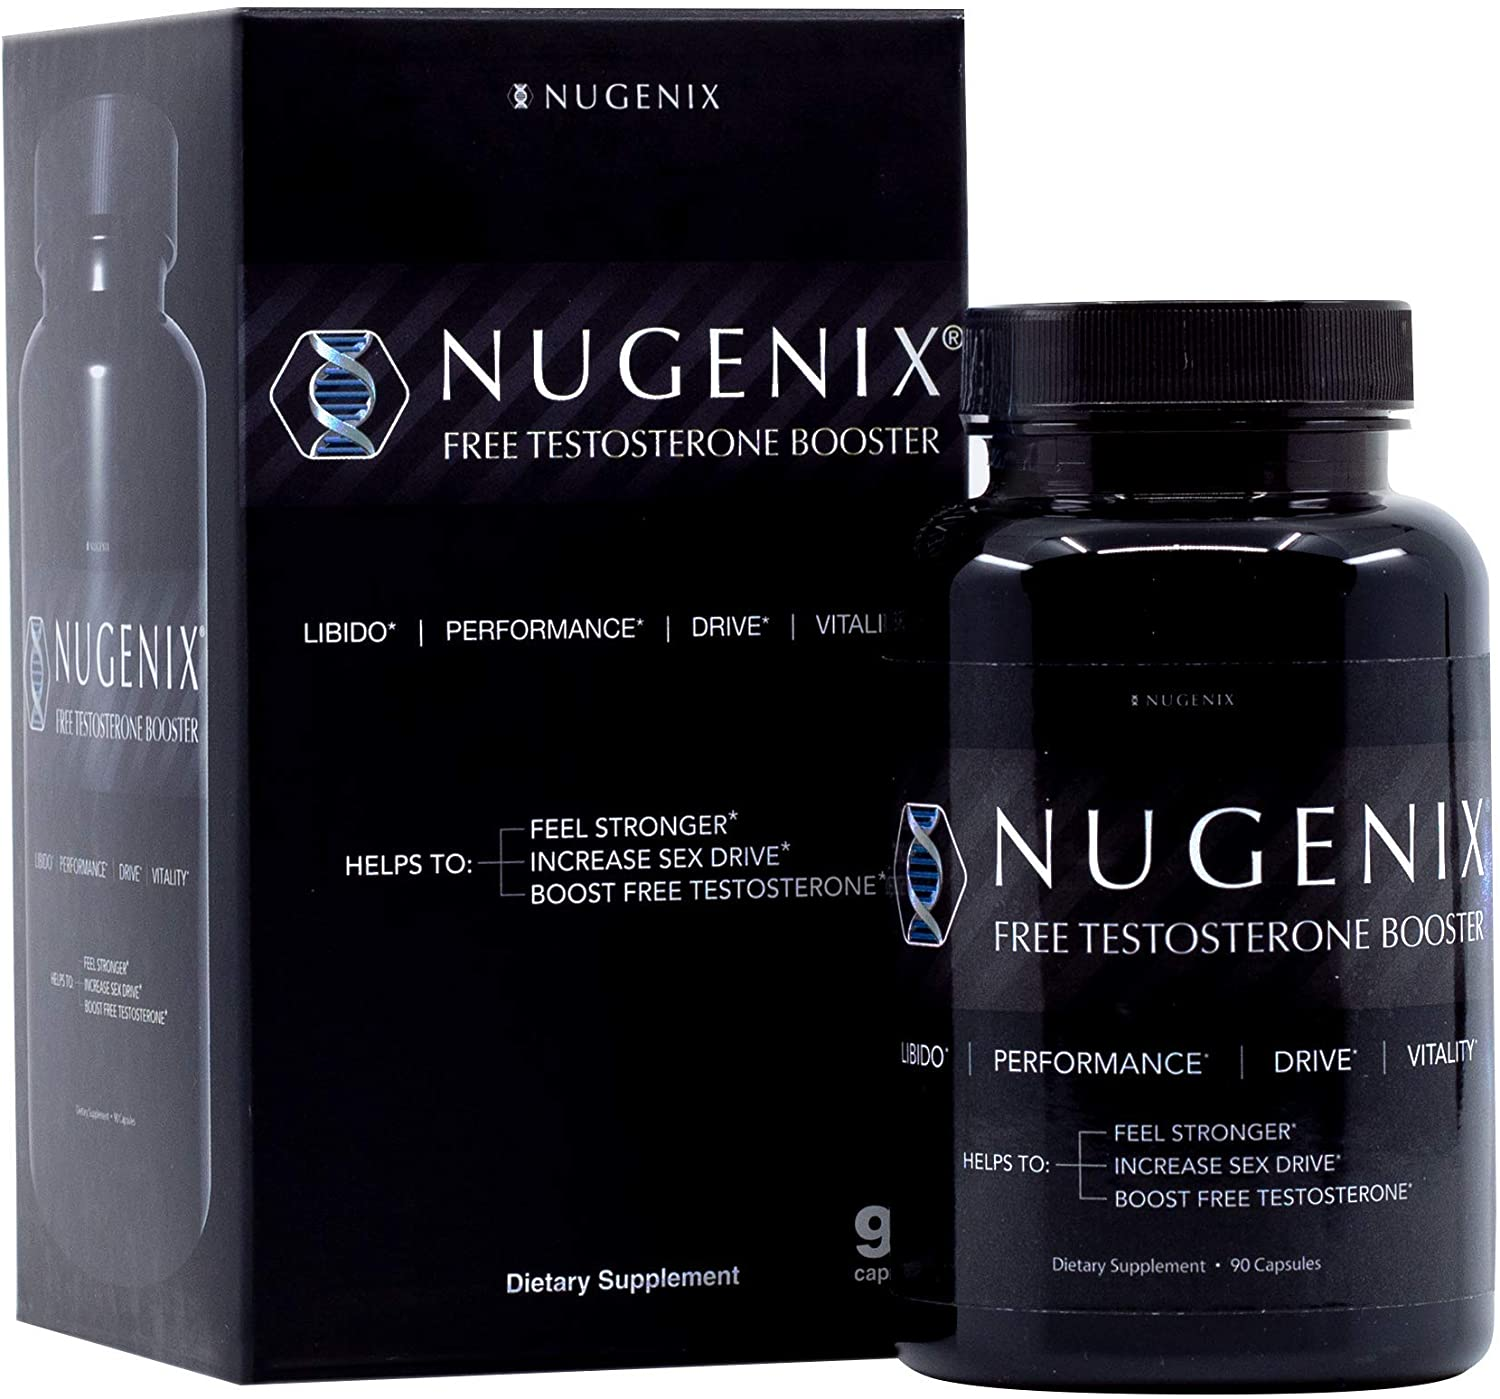 nugenix reviews, nugenix reviews from customers